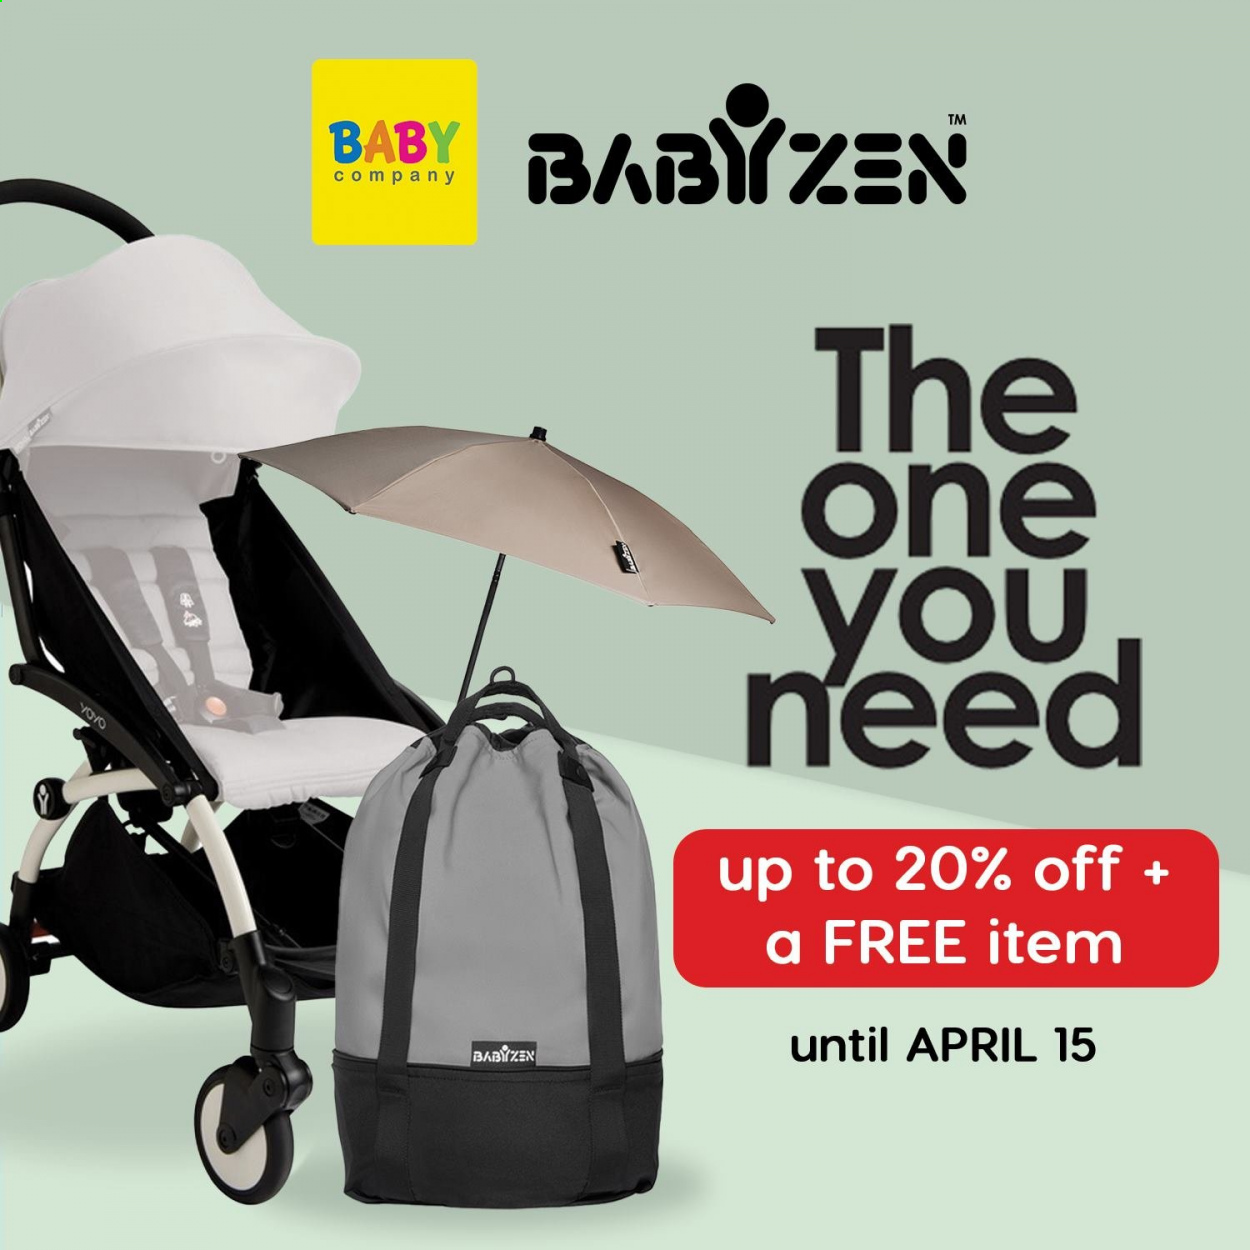 Baby Company offer  - 17.3.2021 - 15.4.2021. Page 1.